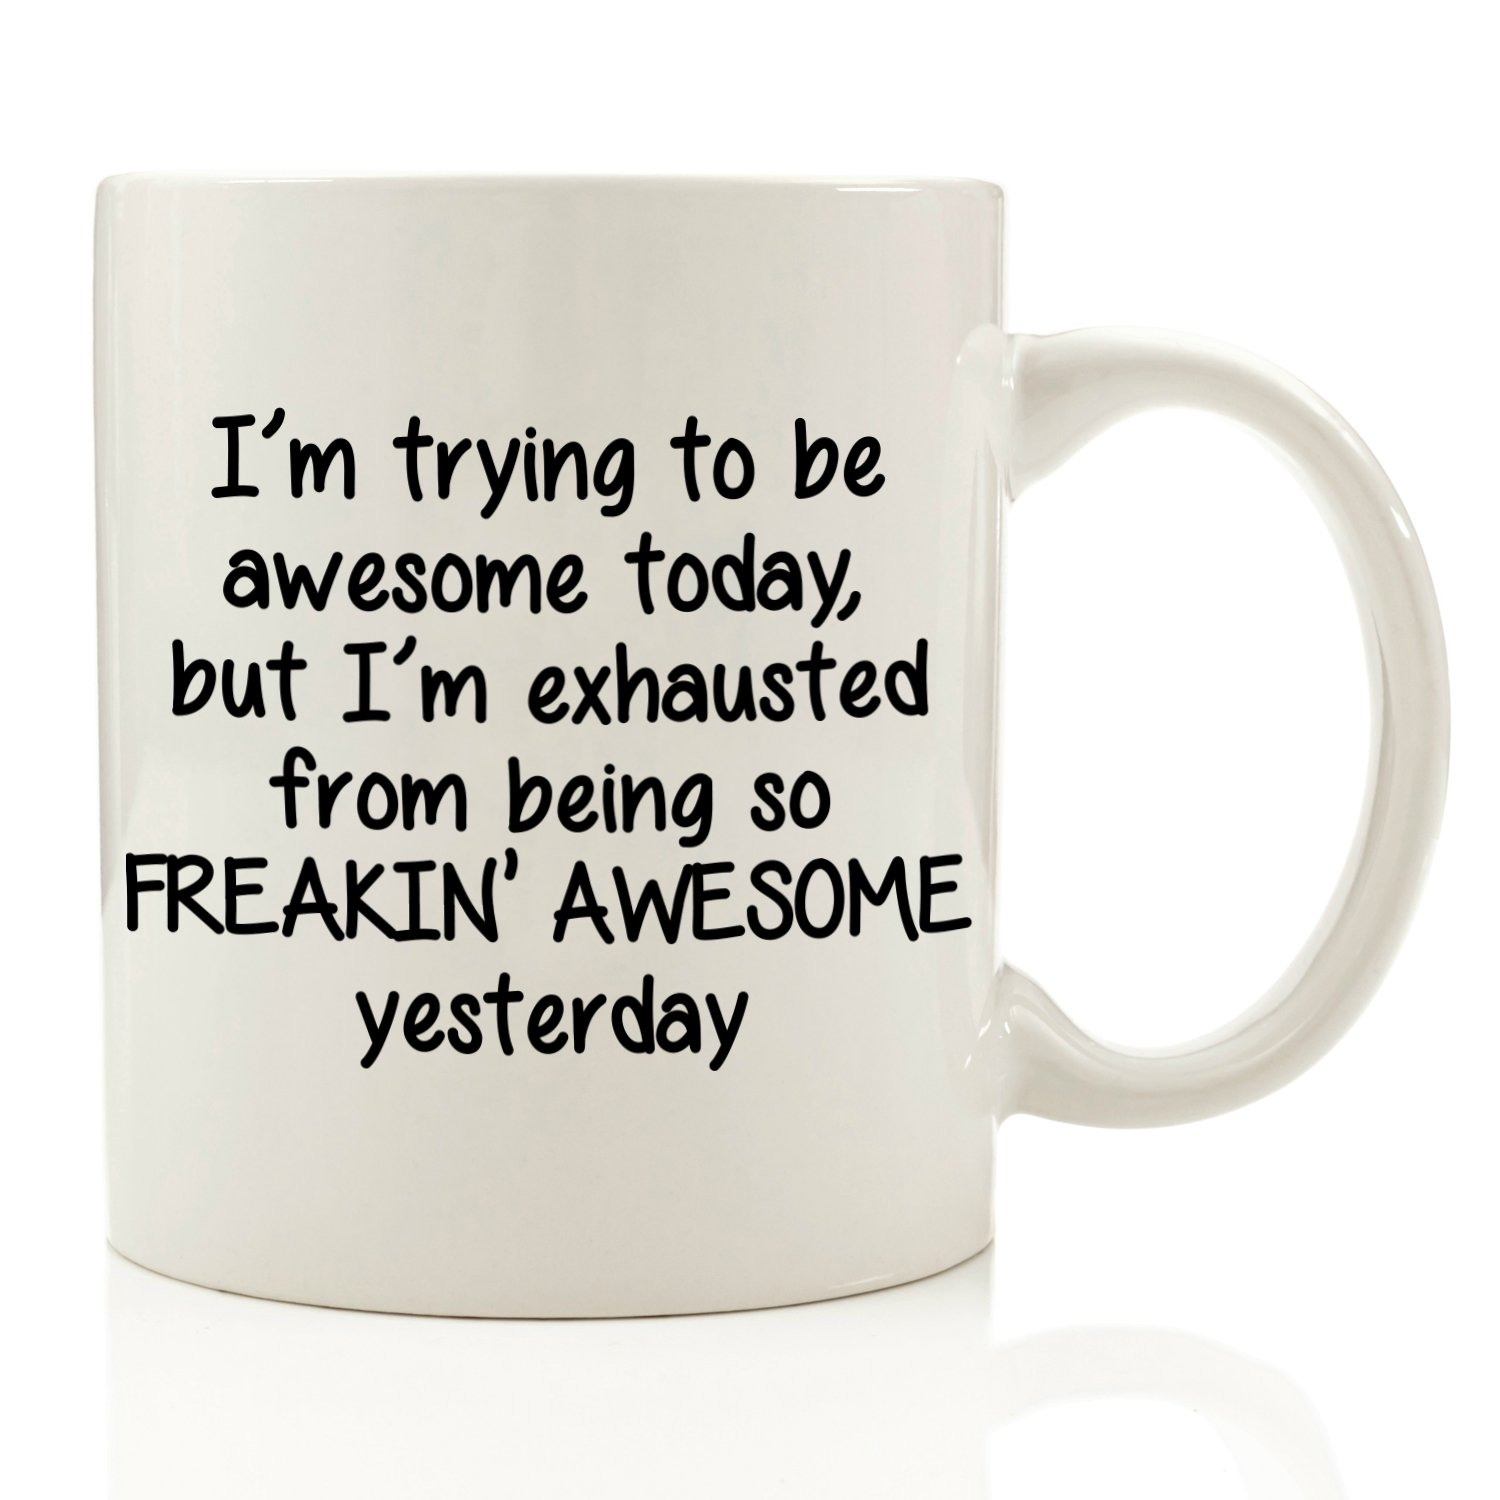 I'm Trying To Be Awesome Today Funny Coffee Mug 11 Oz Christmas Gift image